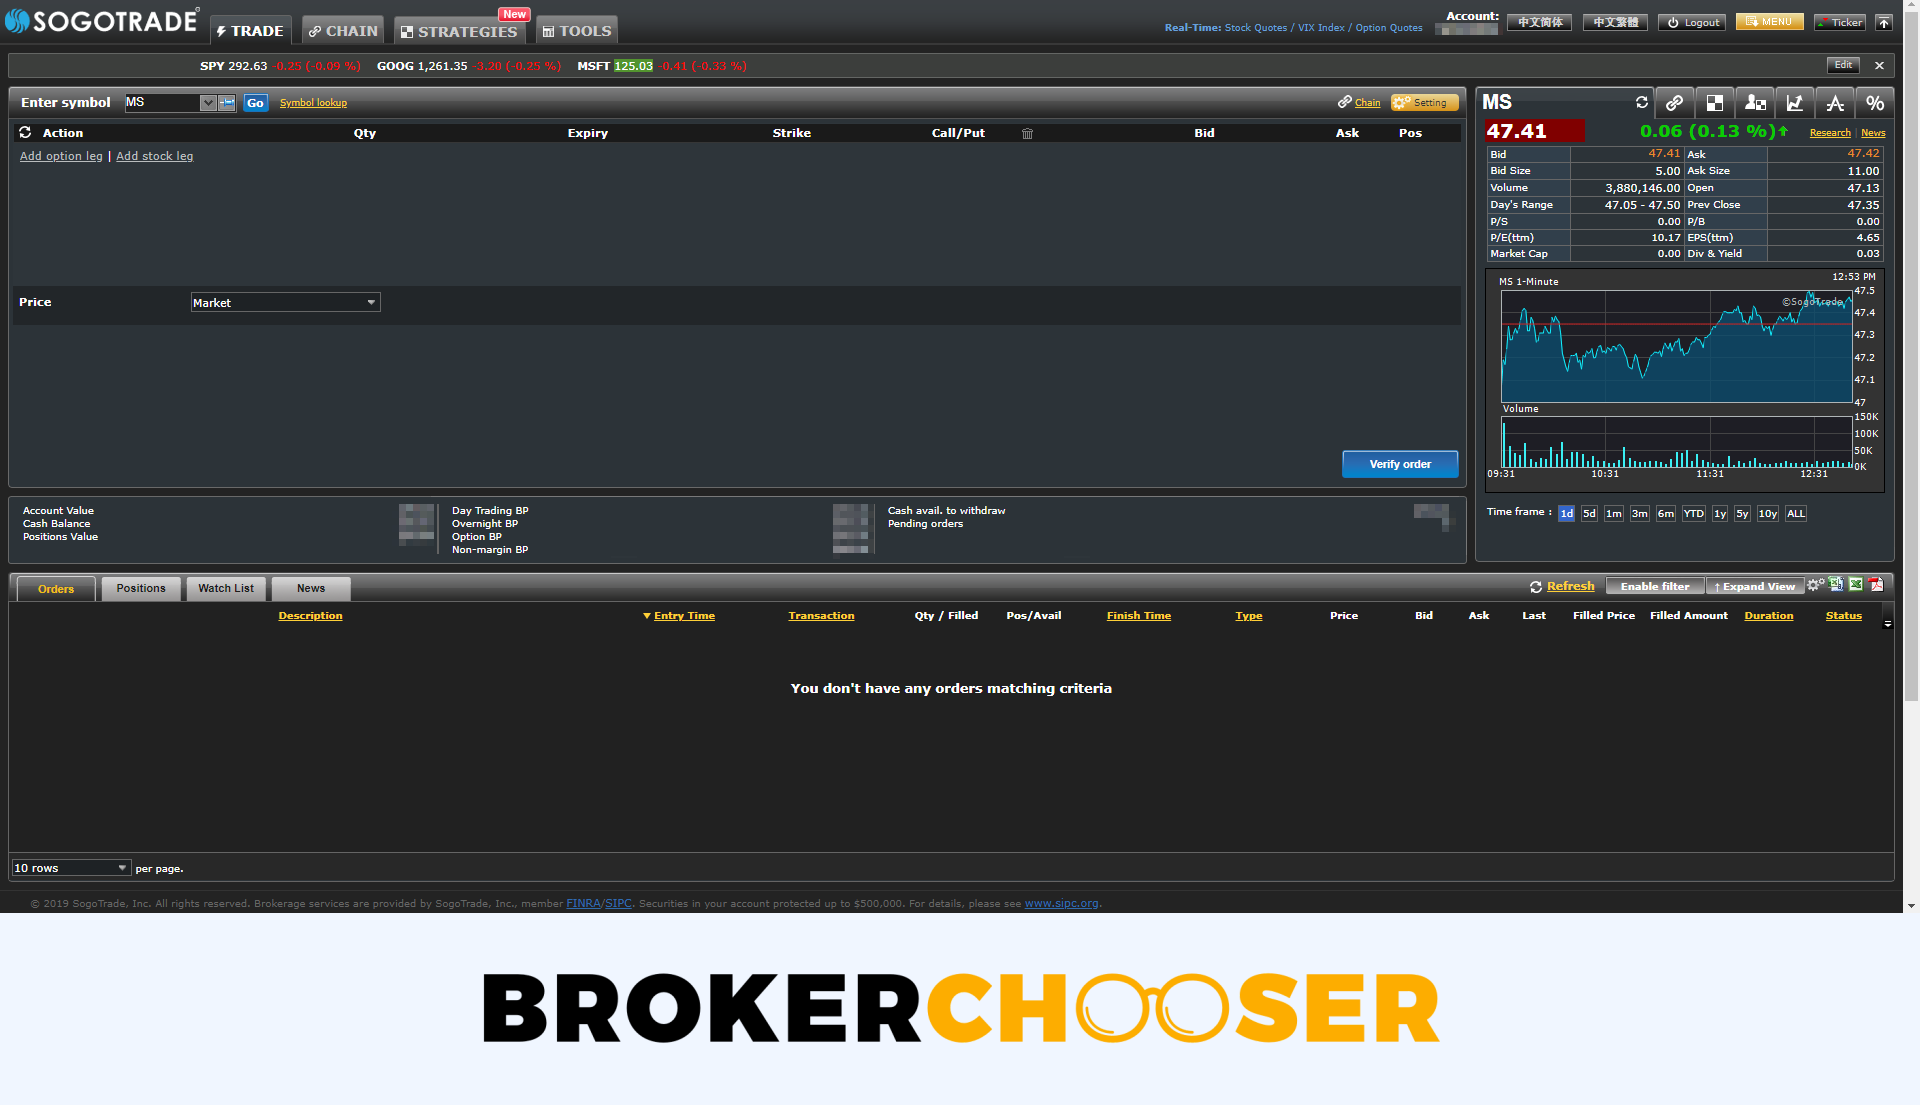 Best discount brokers - SogoTrade trading platform